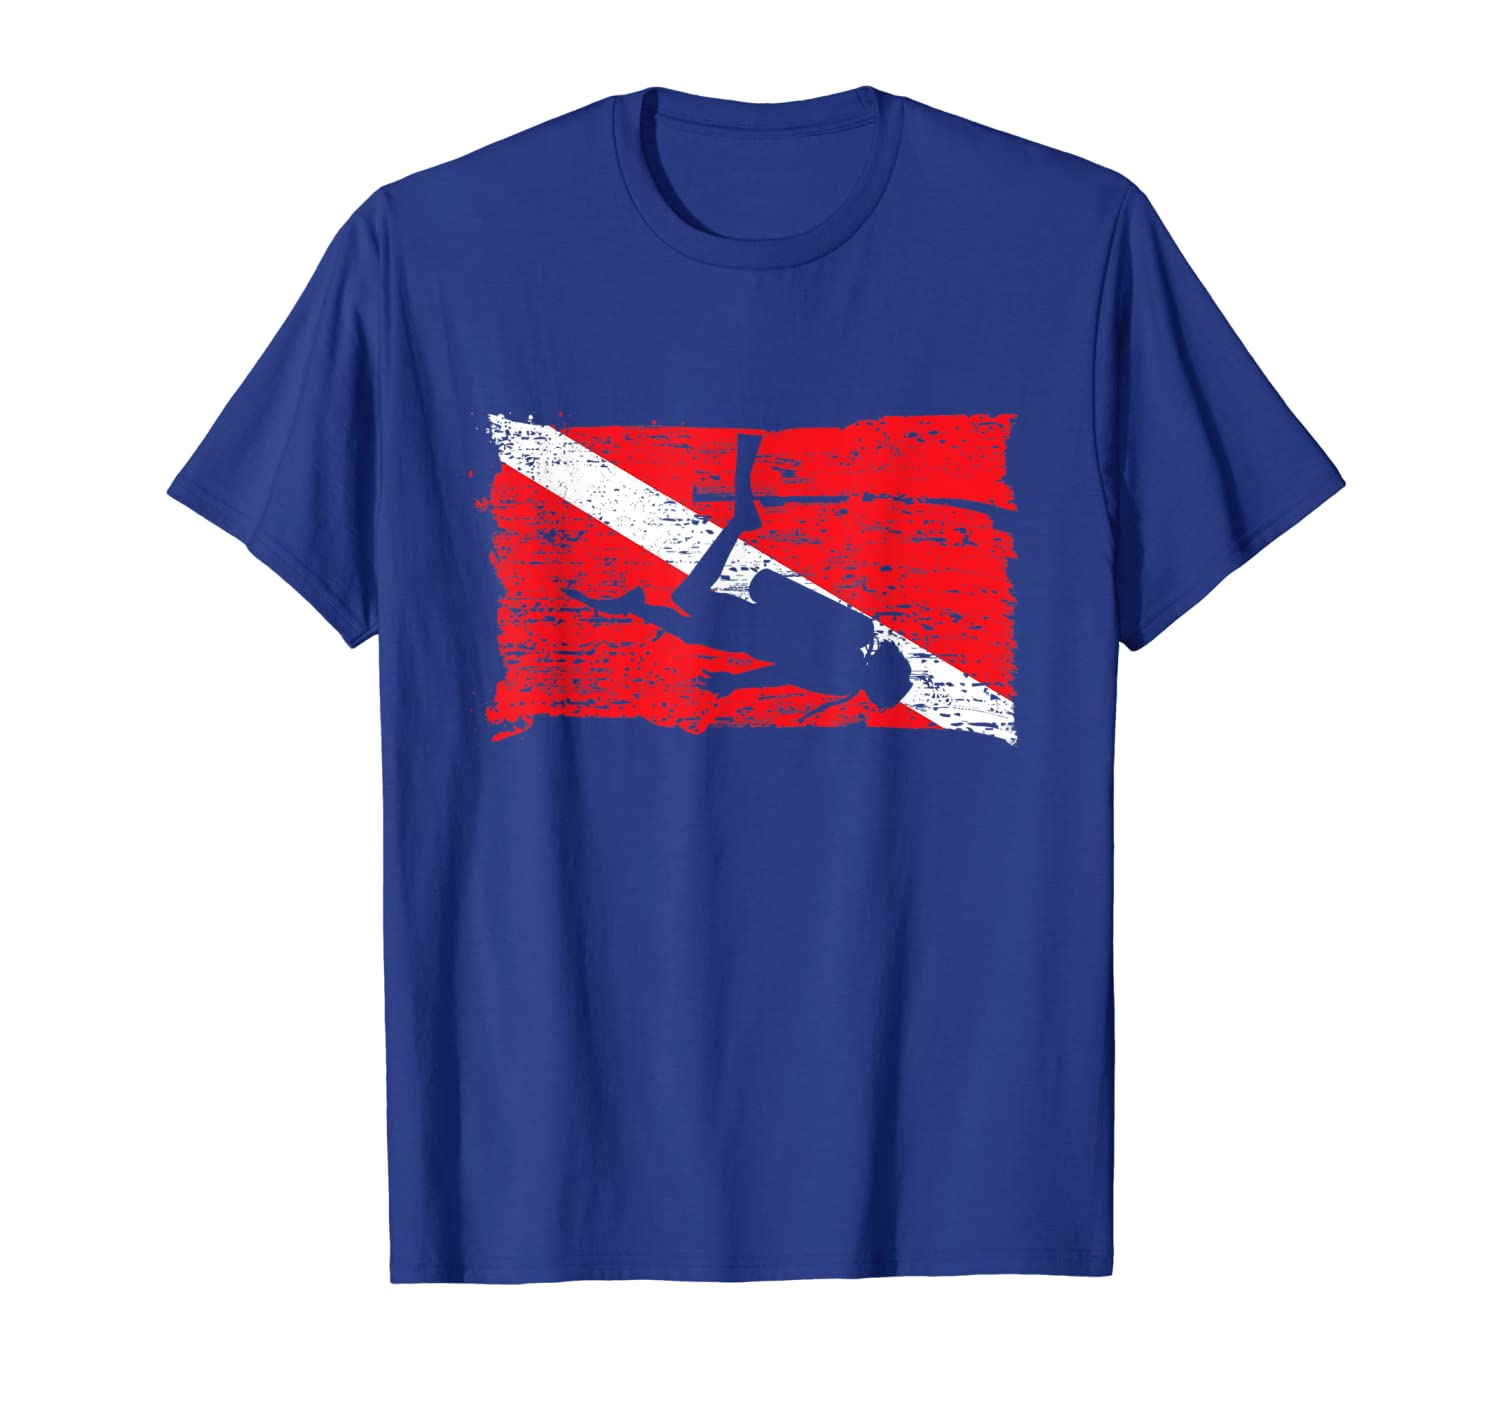 Diving Flag for Scuba Divers who love Dive in the Ocean T-Shirt Unisex Tshirt